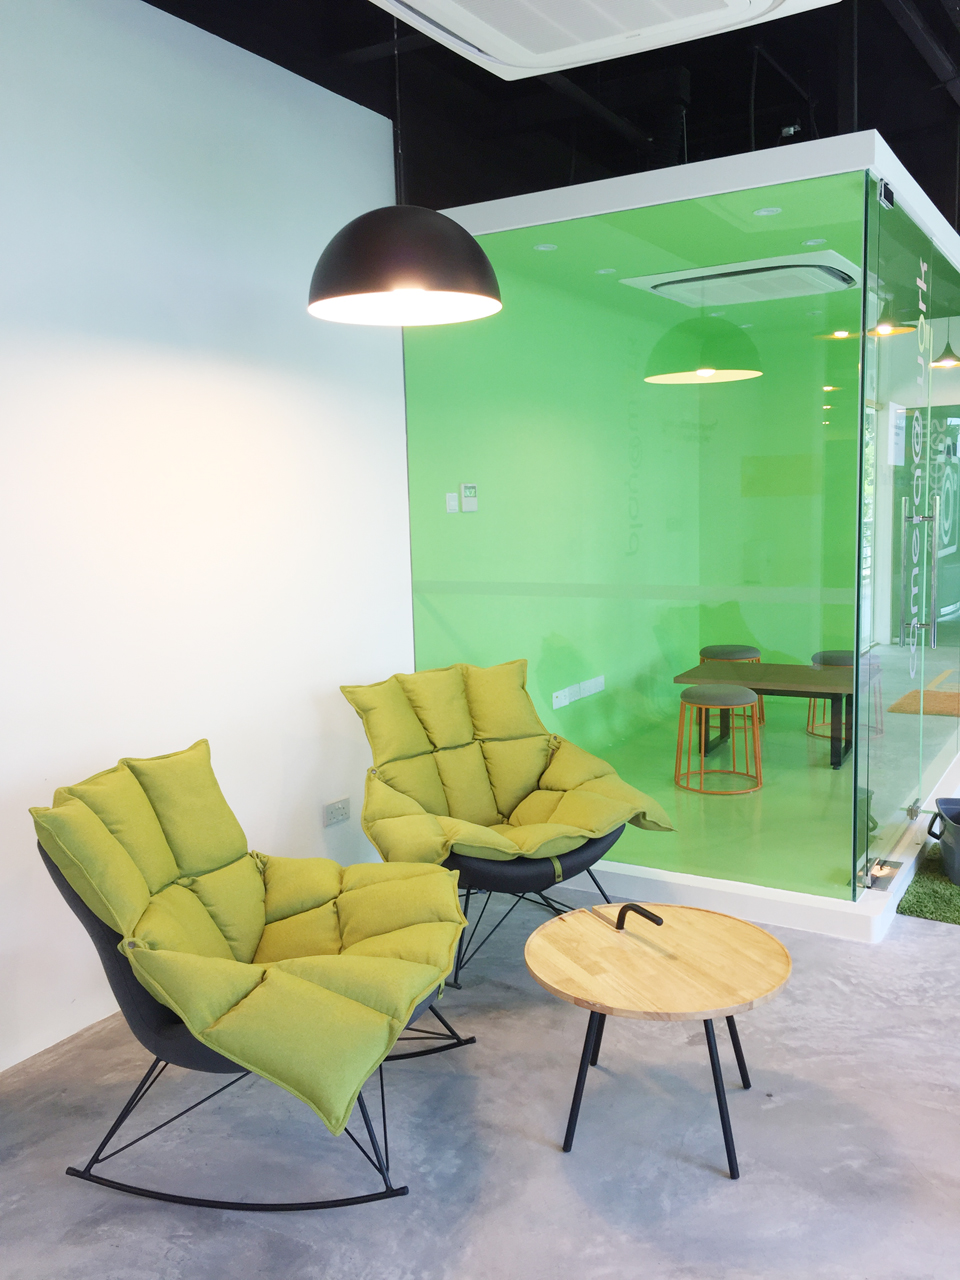 Ngee Ann Polytechnic – Blk 56 The SandBox | Product Seen: [Ginger Rocking Lounge Chair & Merry Coffee Table]<br />